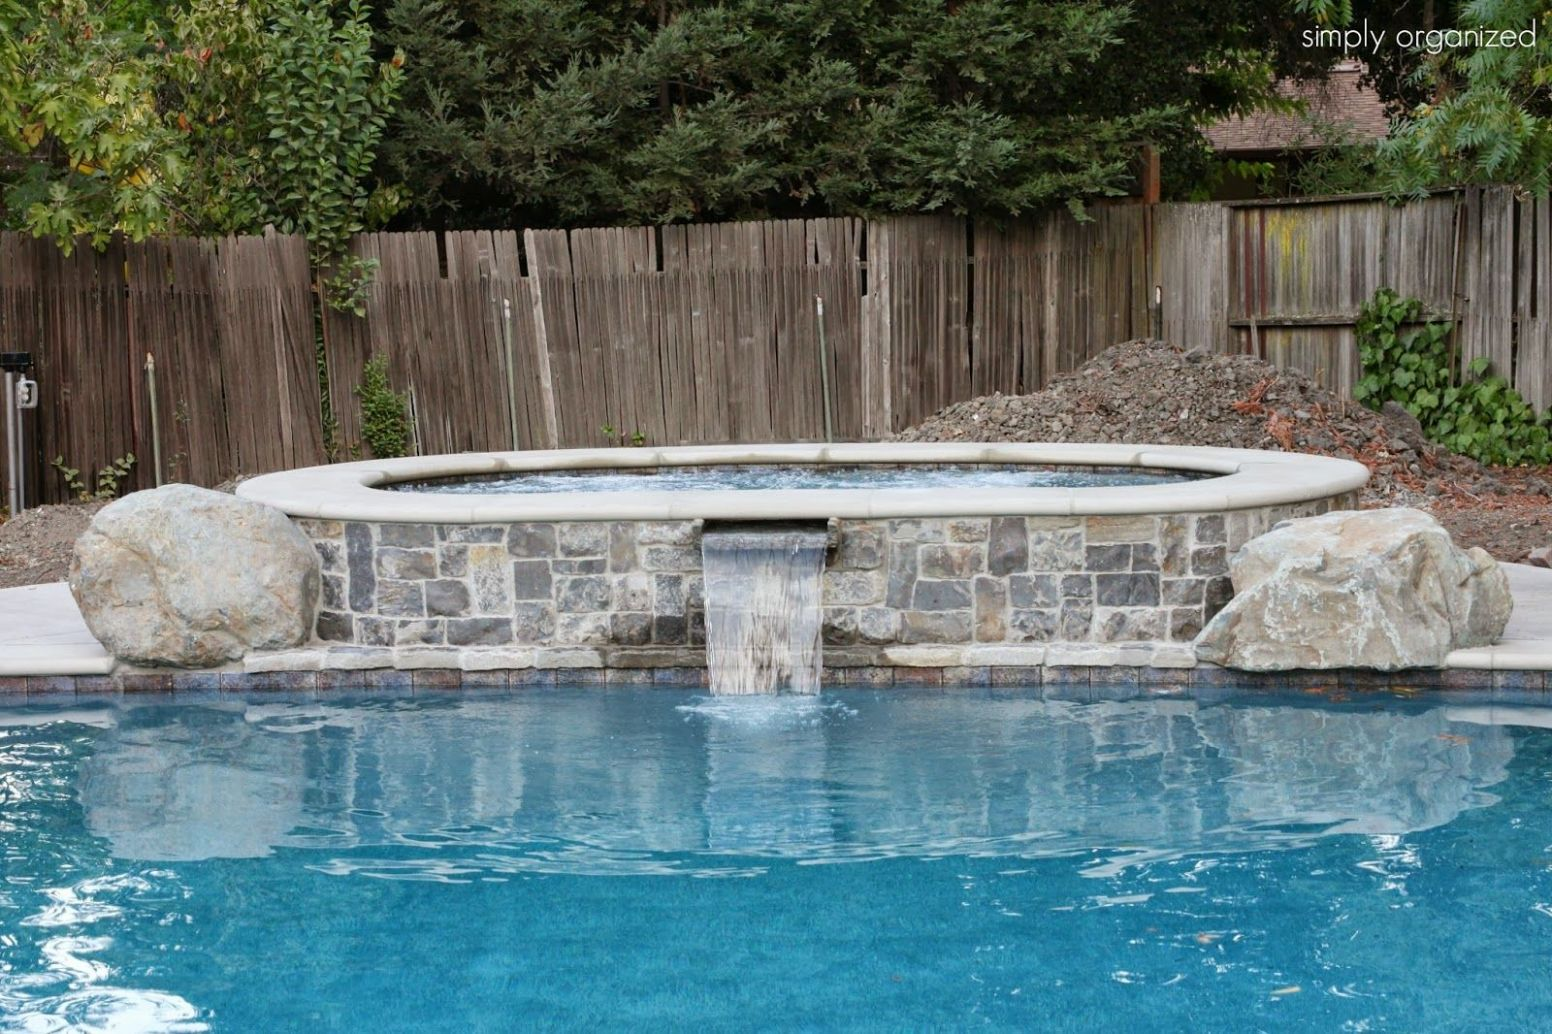 Swimming Pool Update - It's done | Swimming pools, Concrete pool ...